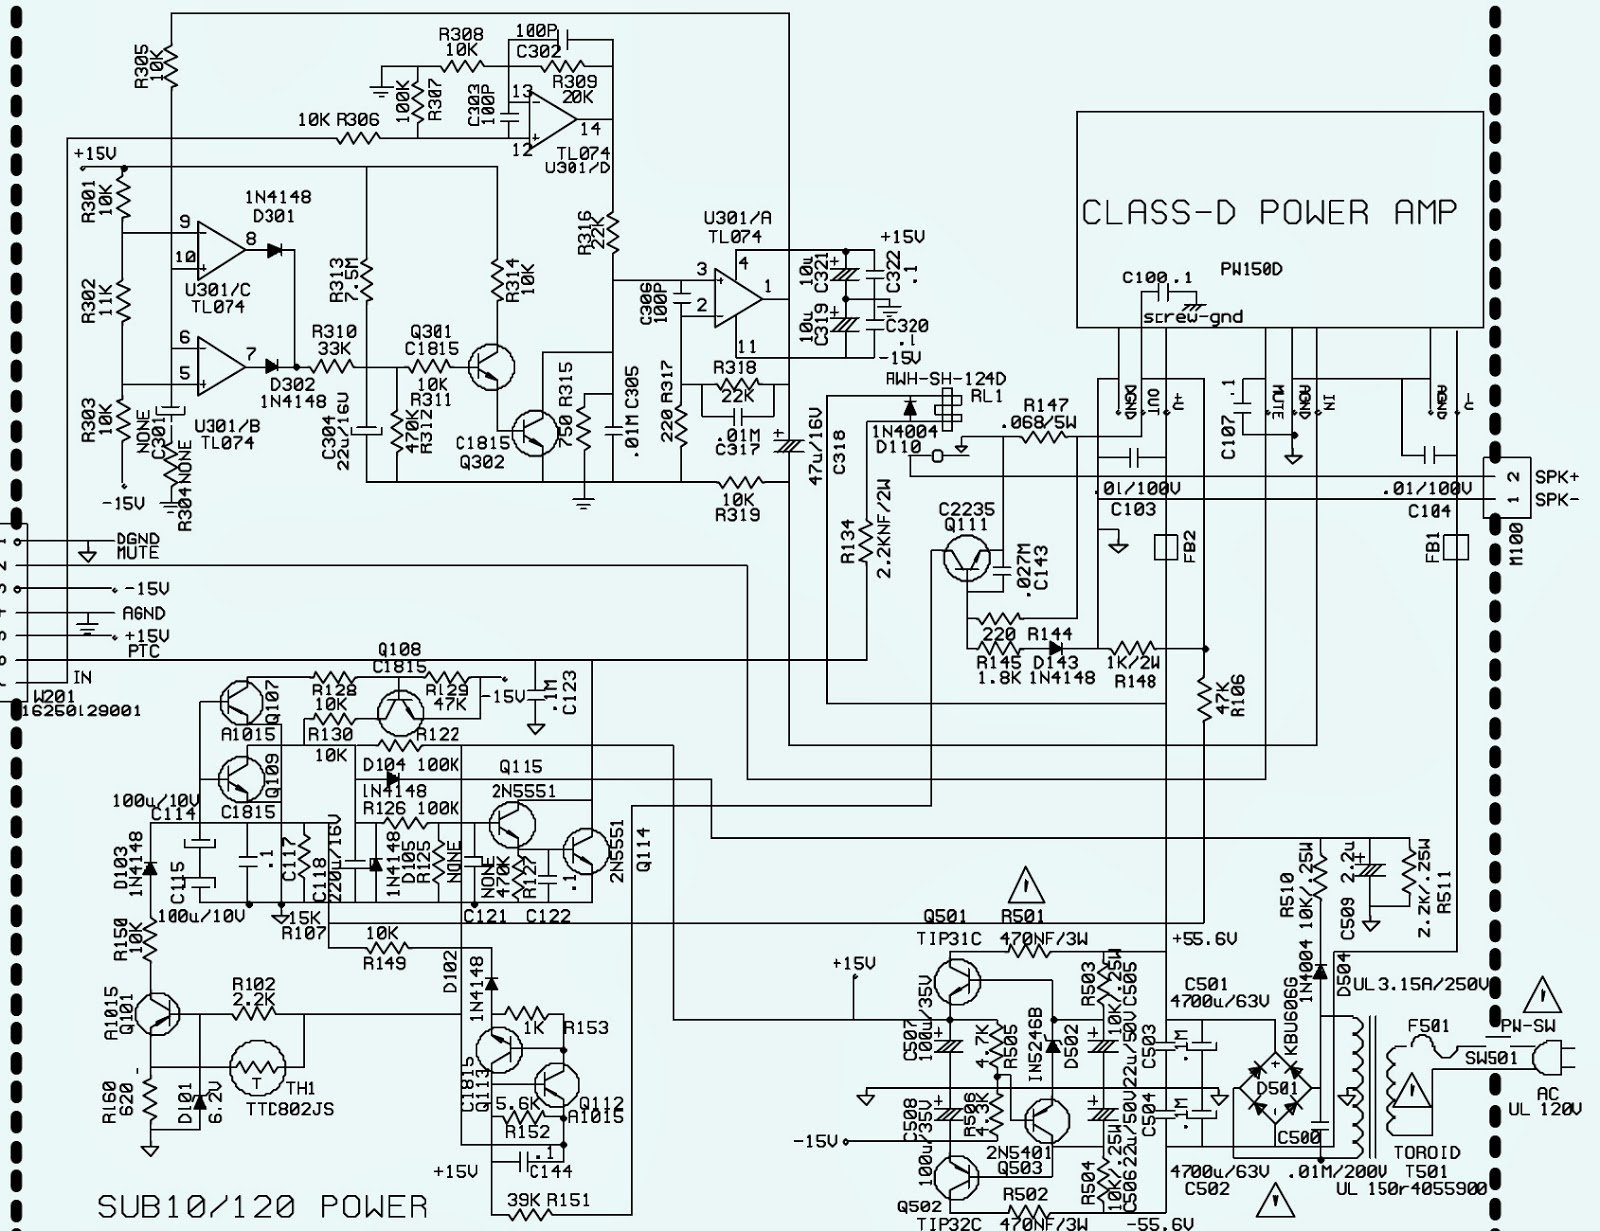 hight resolution of jbl powered subwoofer schematic diagram universal wiring diagram 600 ampsubwoofer schematic circuit diagram electro help wiring